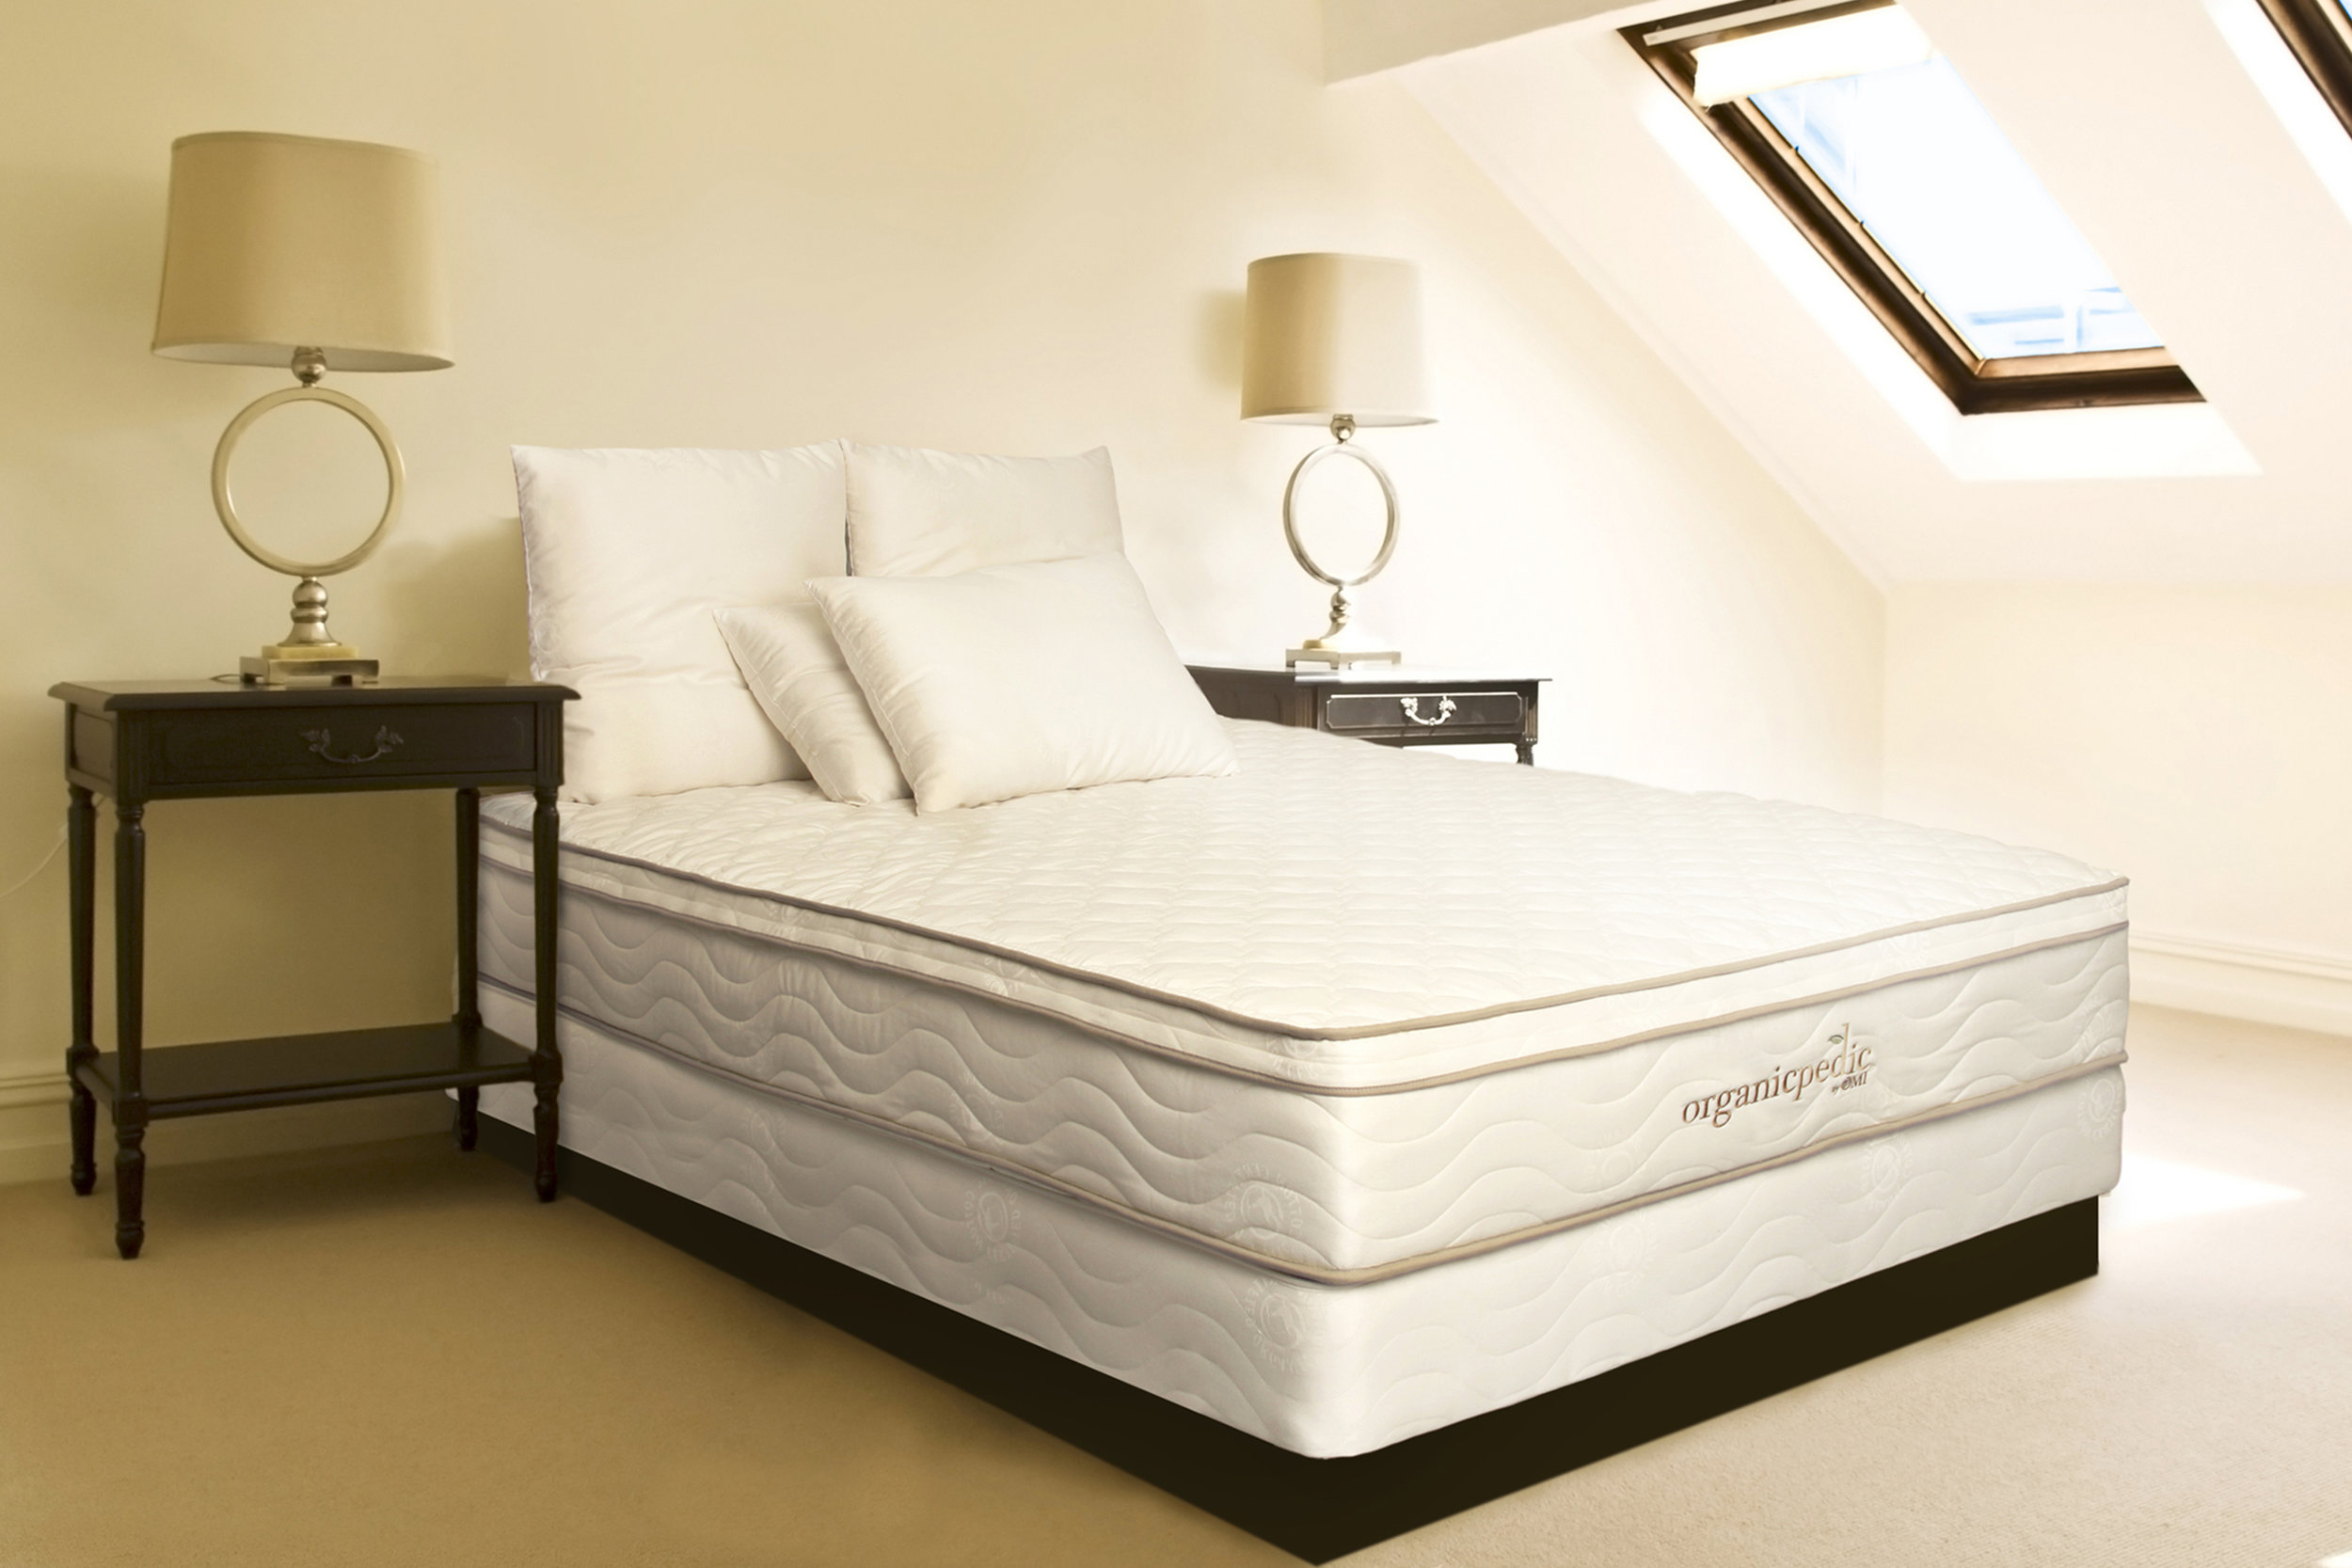 OMI Duo Mattress